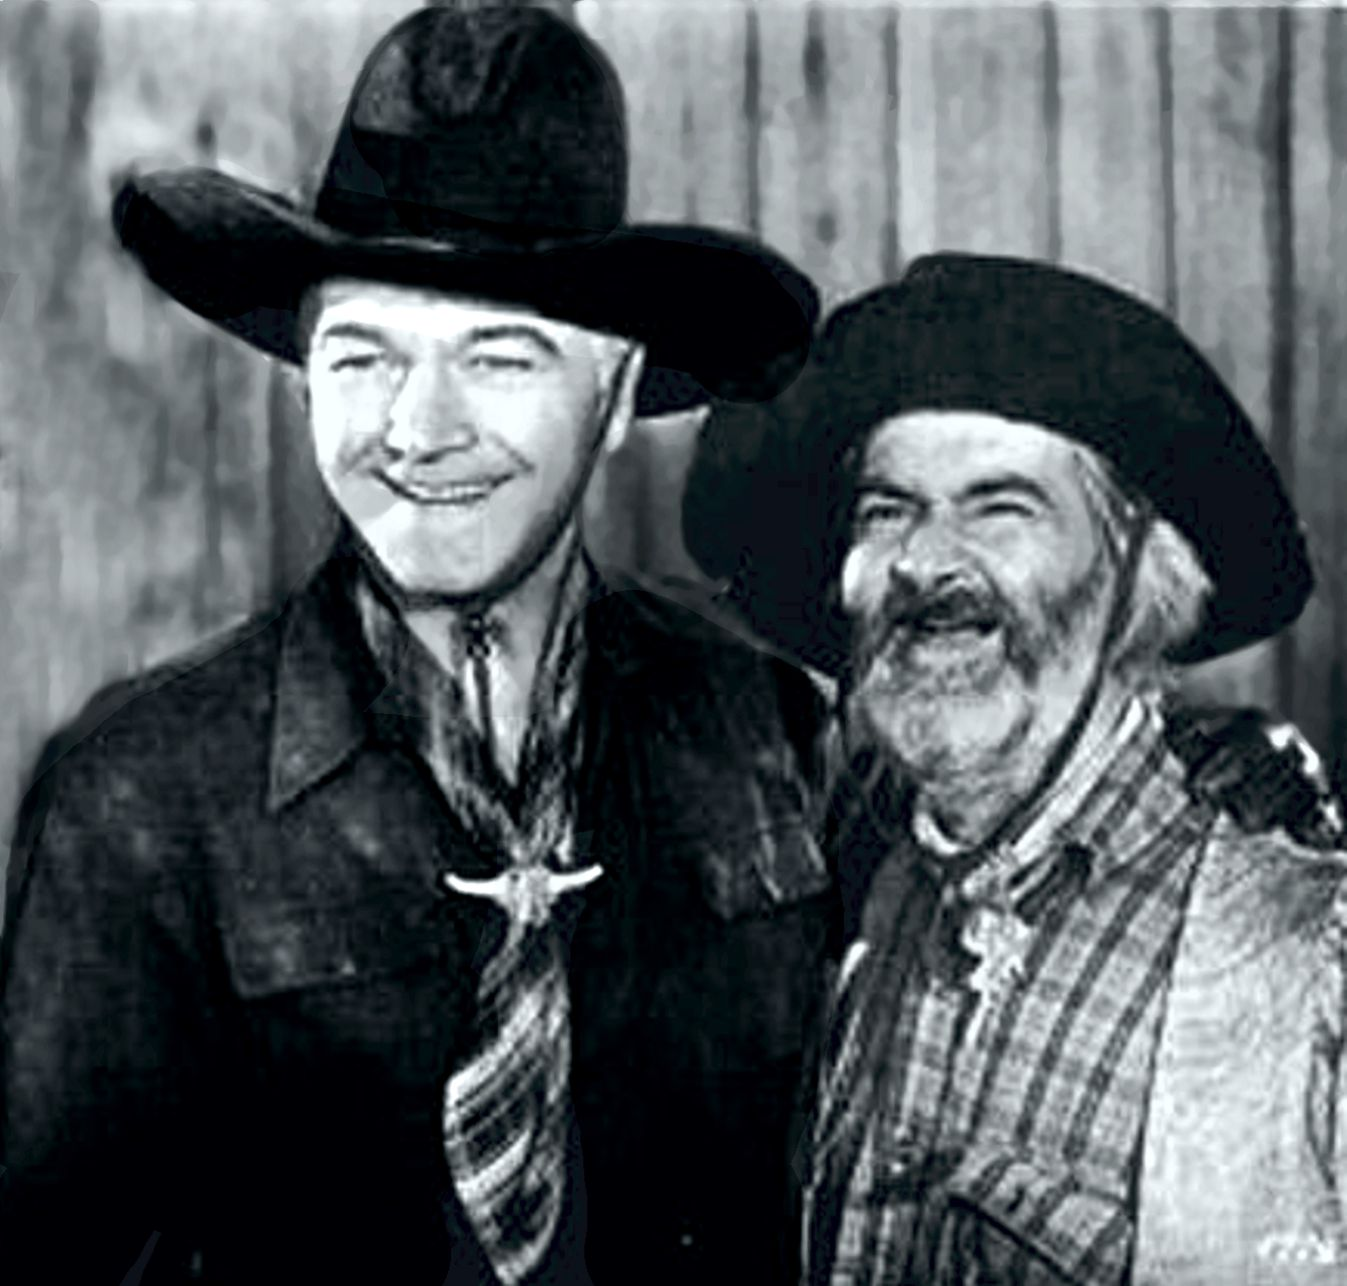 Heretic rebel a thing to flout hopalong cassidy scruffy for Gabby hayes